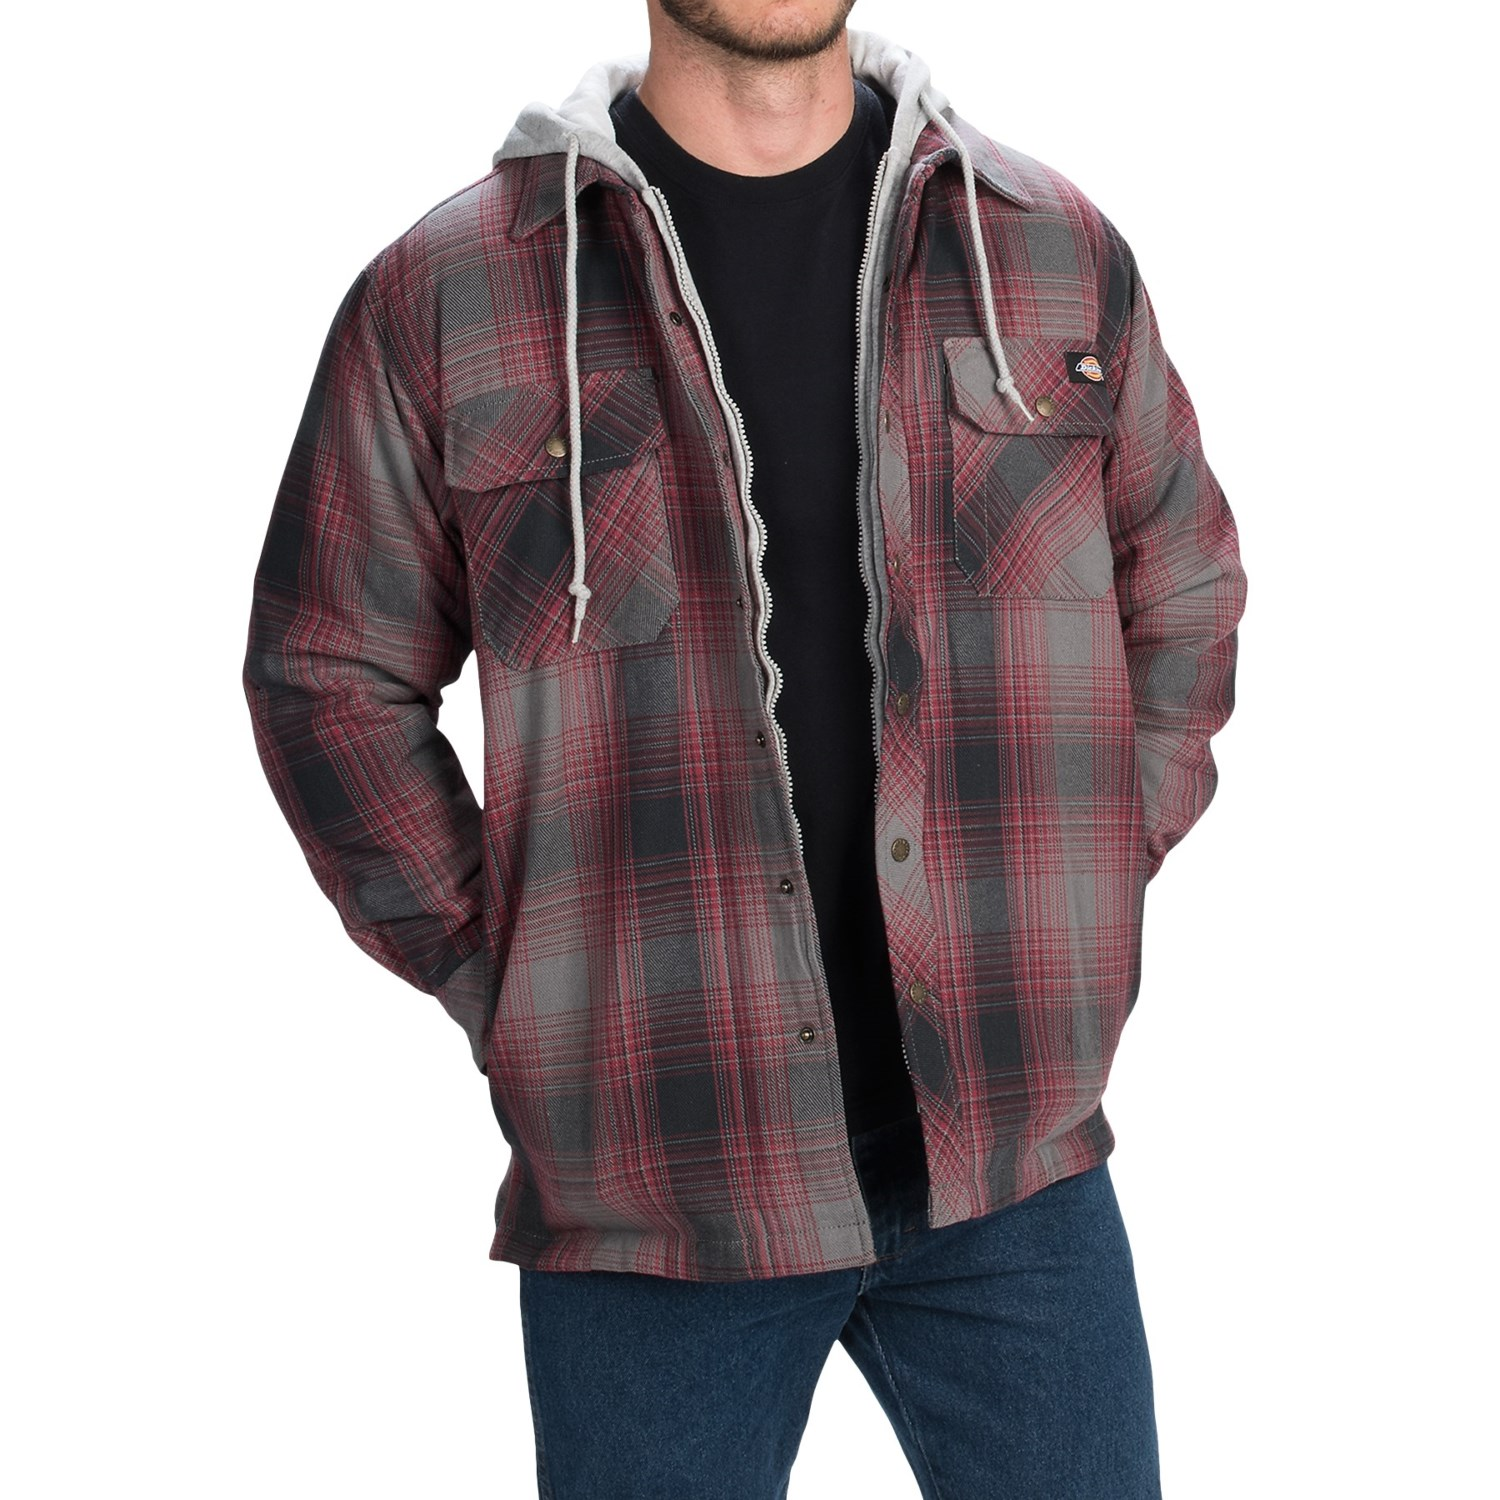 Find mens quilted shirts at ShopStyle. Shop the latest collection of mens quilted shirts from the most popular stores - all in one place.